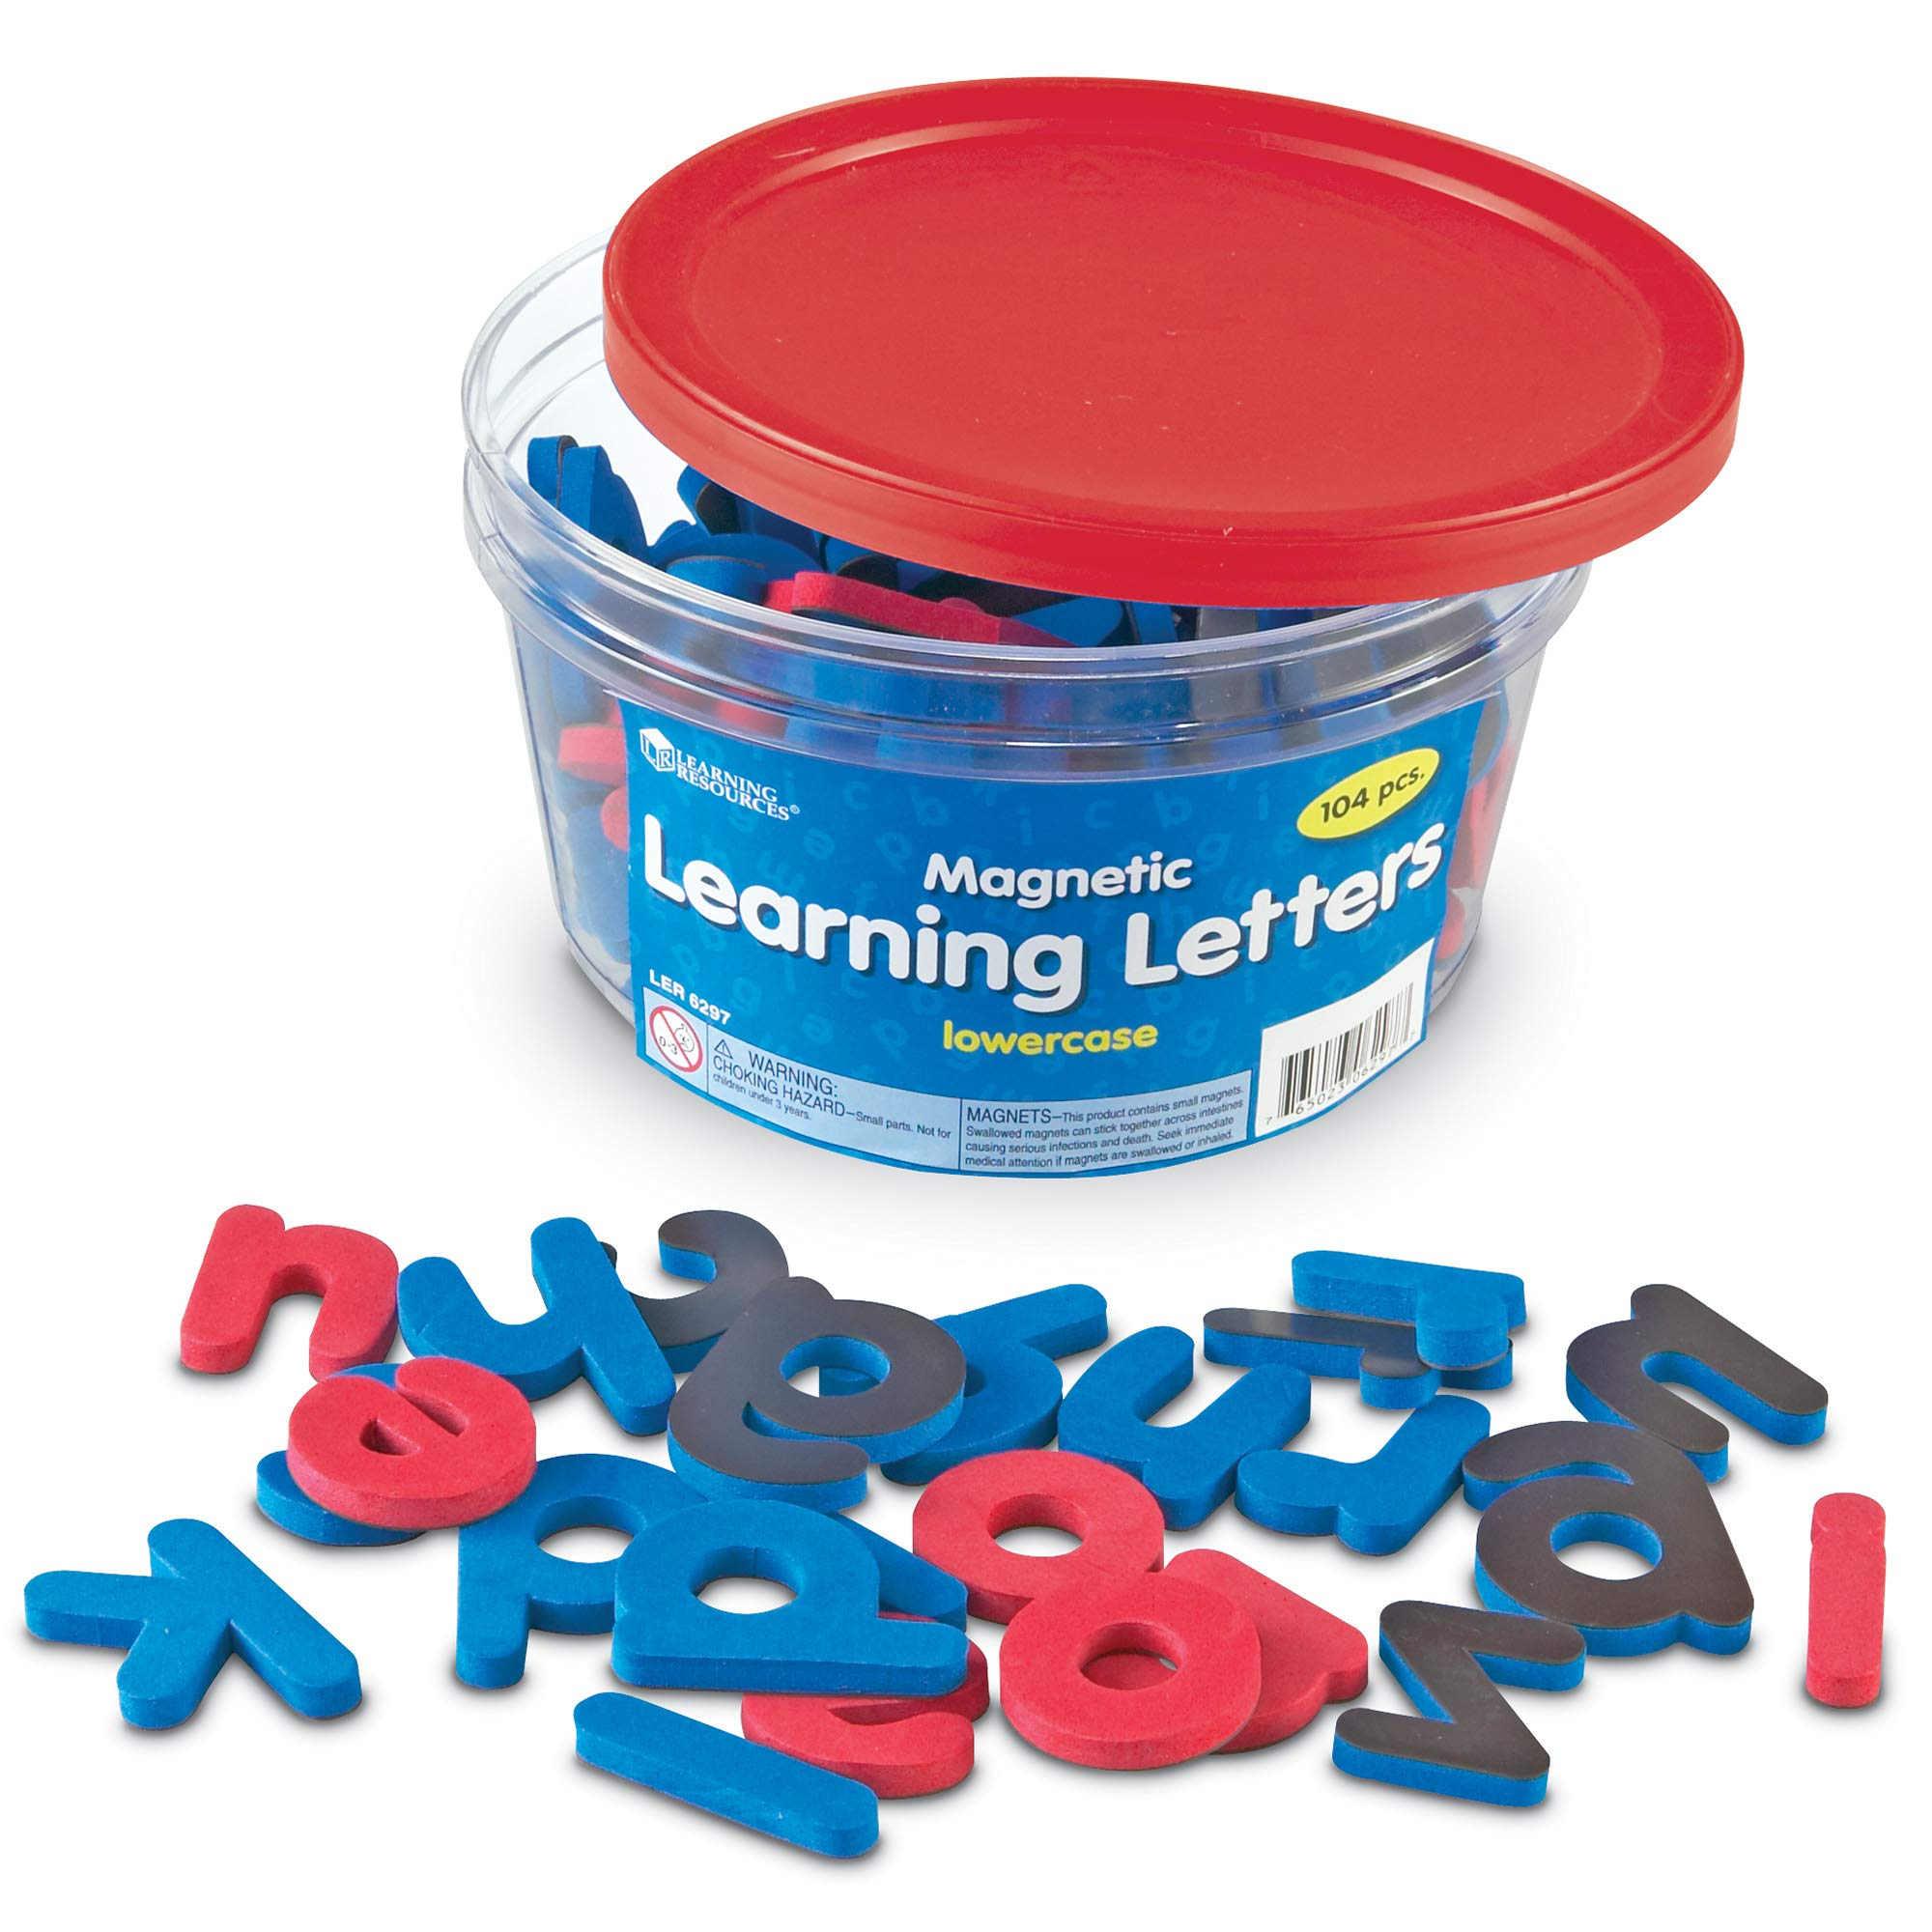 Learning Resources Magnetic Learning Letters - Lowercase, Stick to Fridge, Ages 3+ by Learning Resources